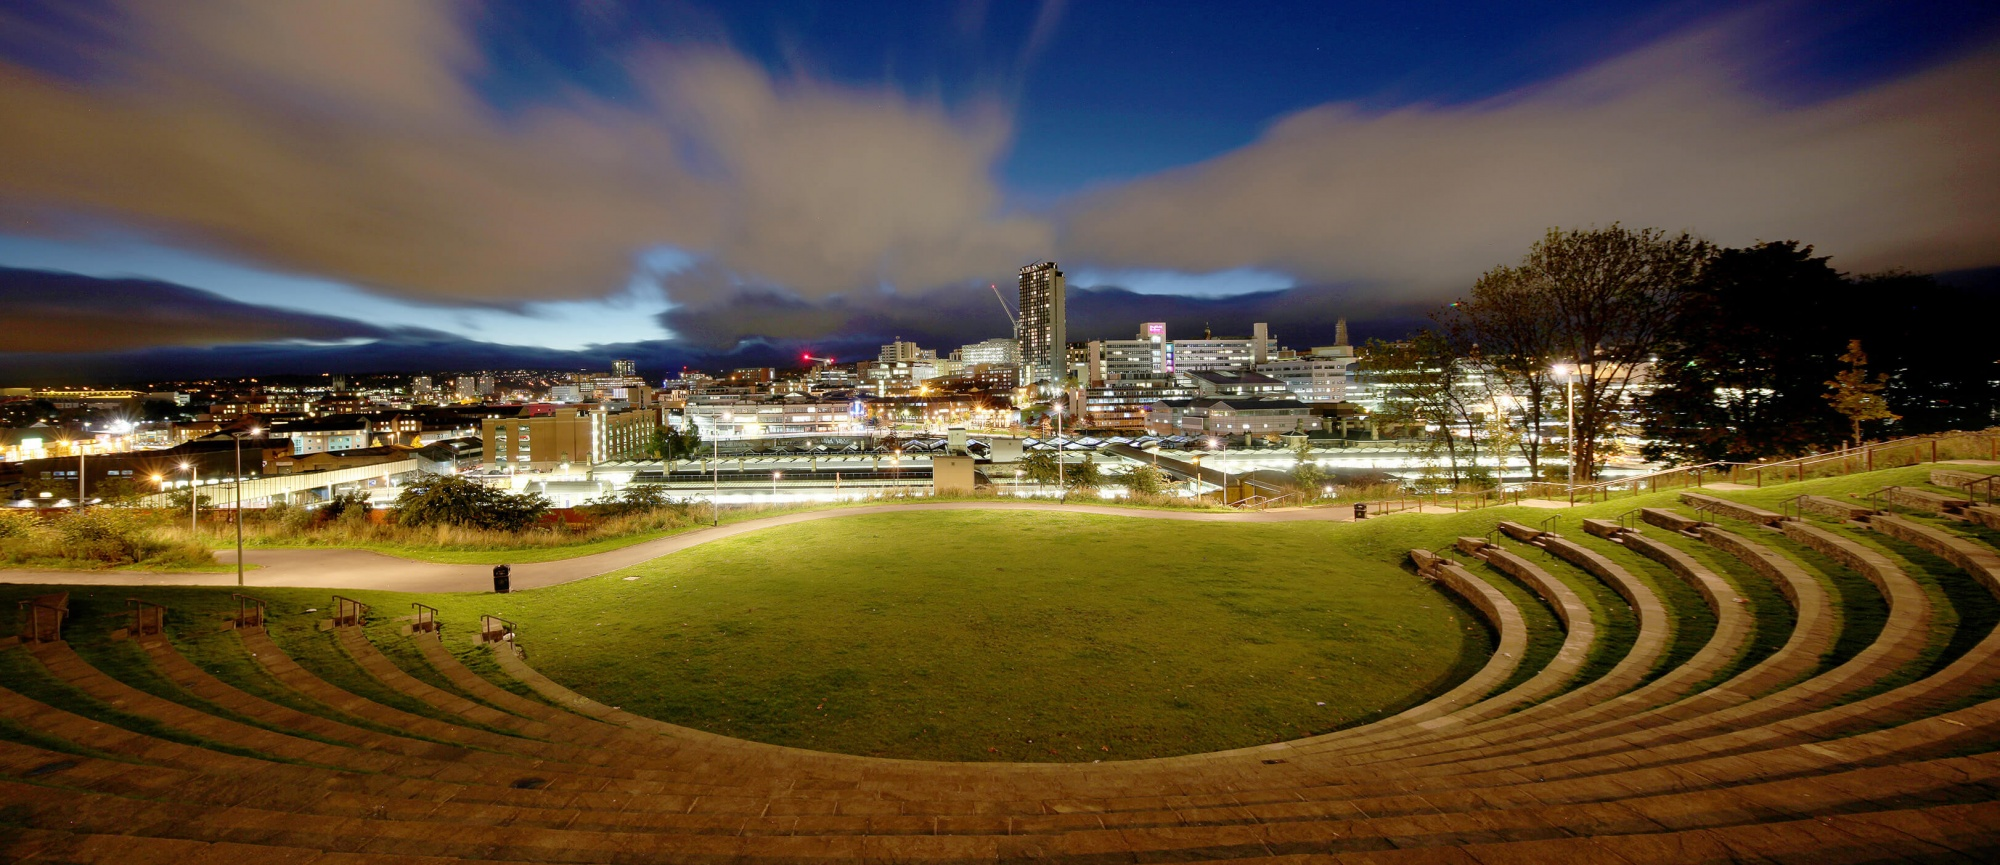 a night panorama of Sheffields city sky line, using a long exposure and stitching the pictures in photoshop creates a nice effect